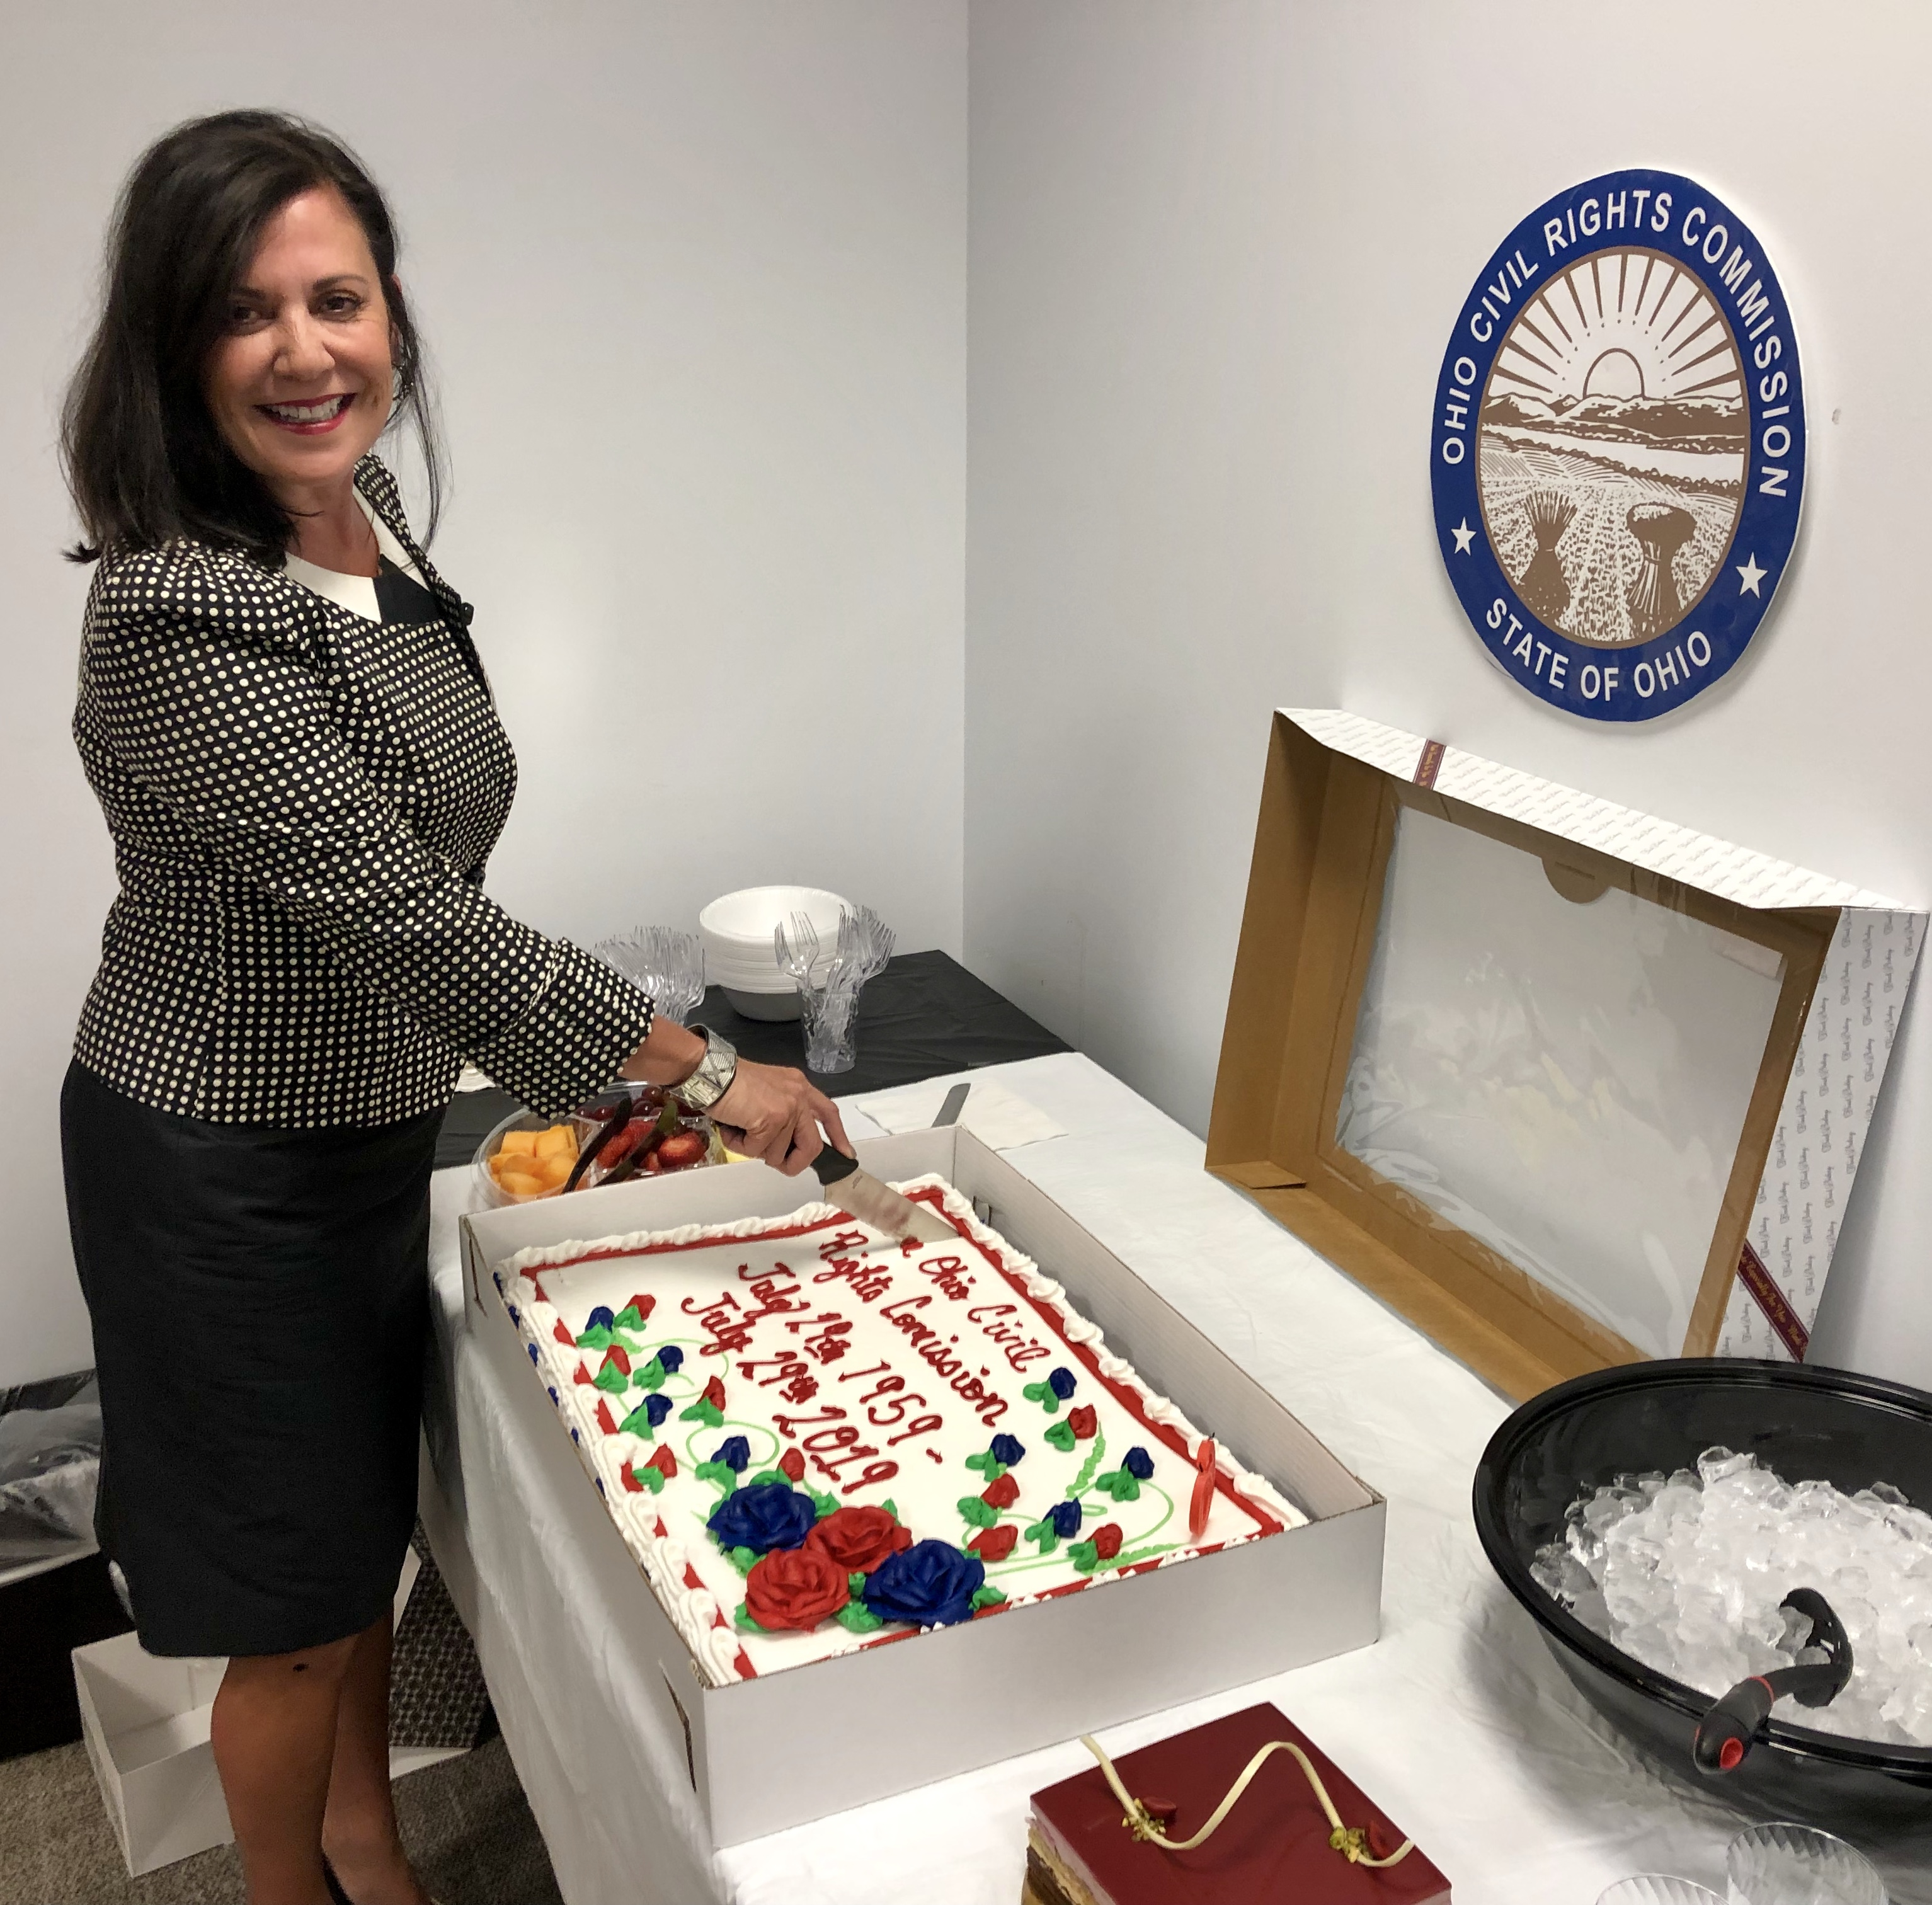 Photo of Chair Barreras cutting cake